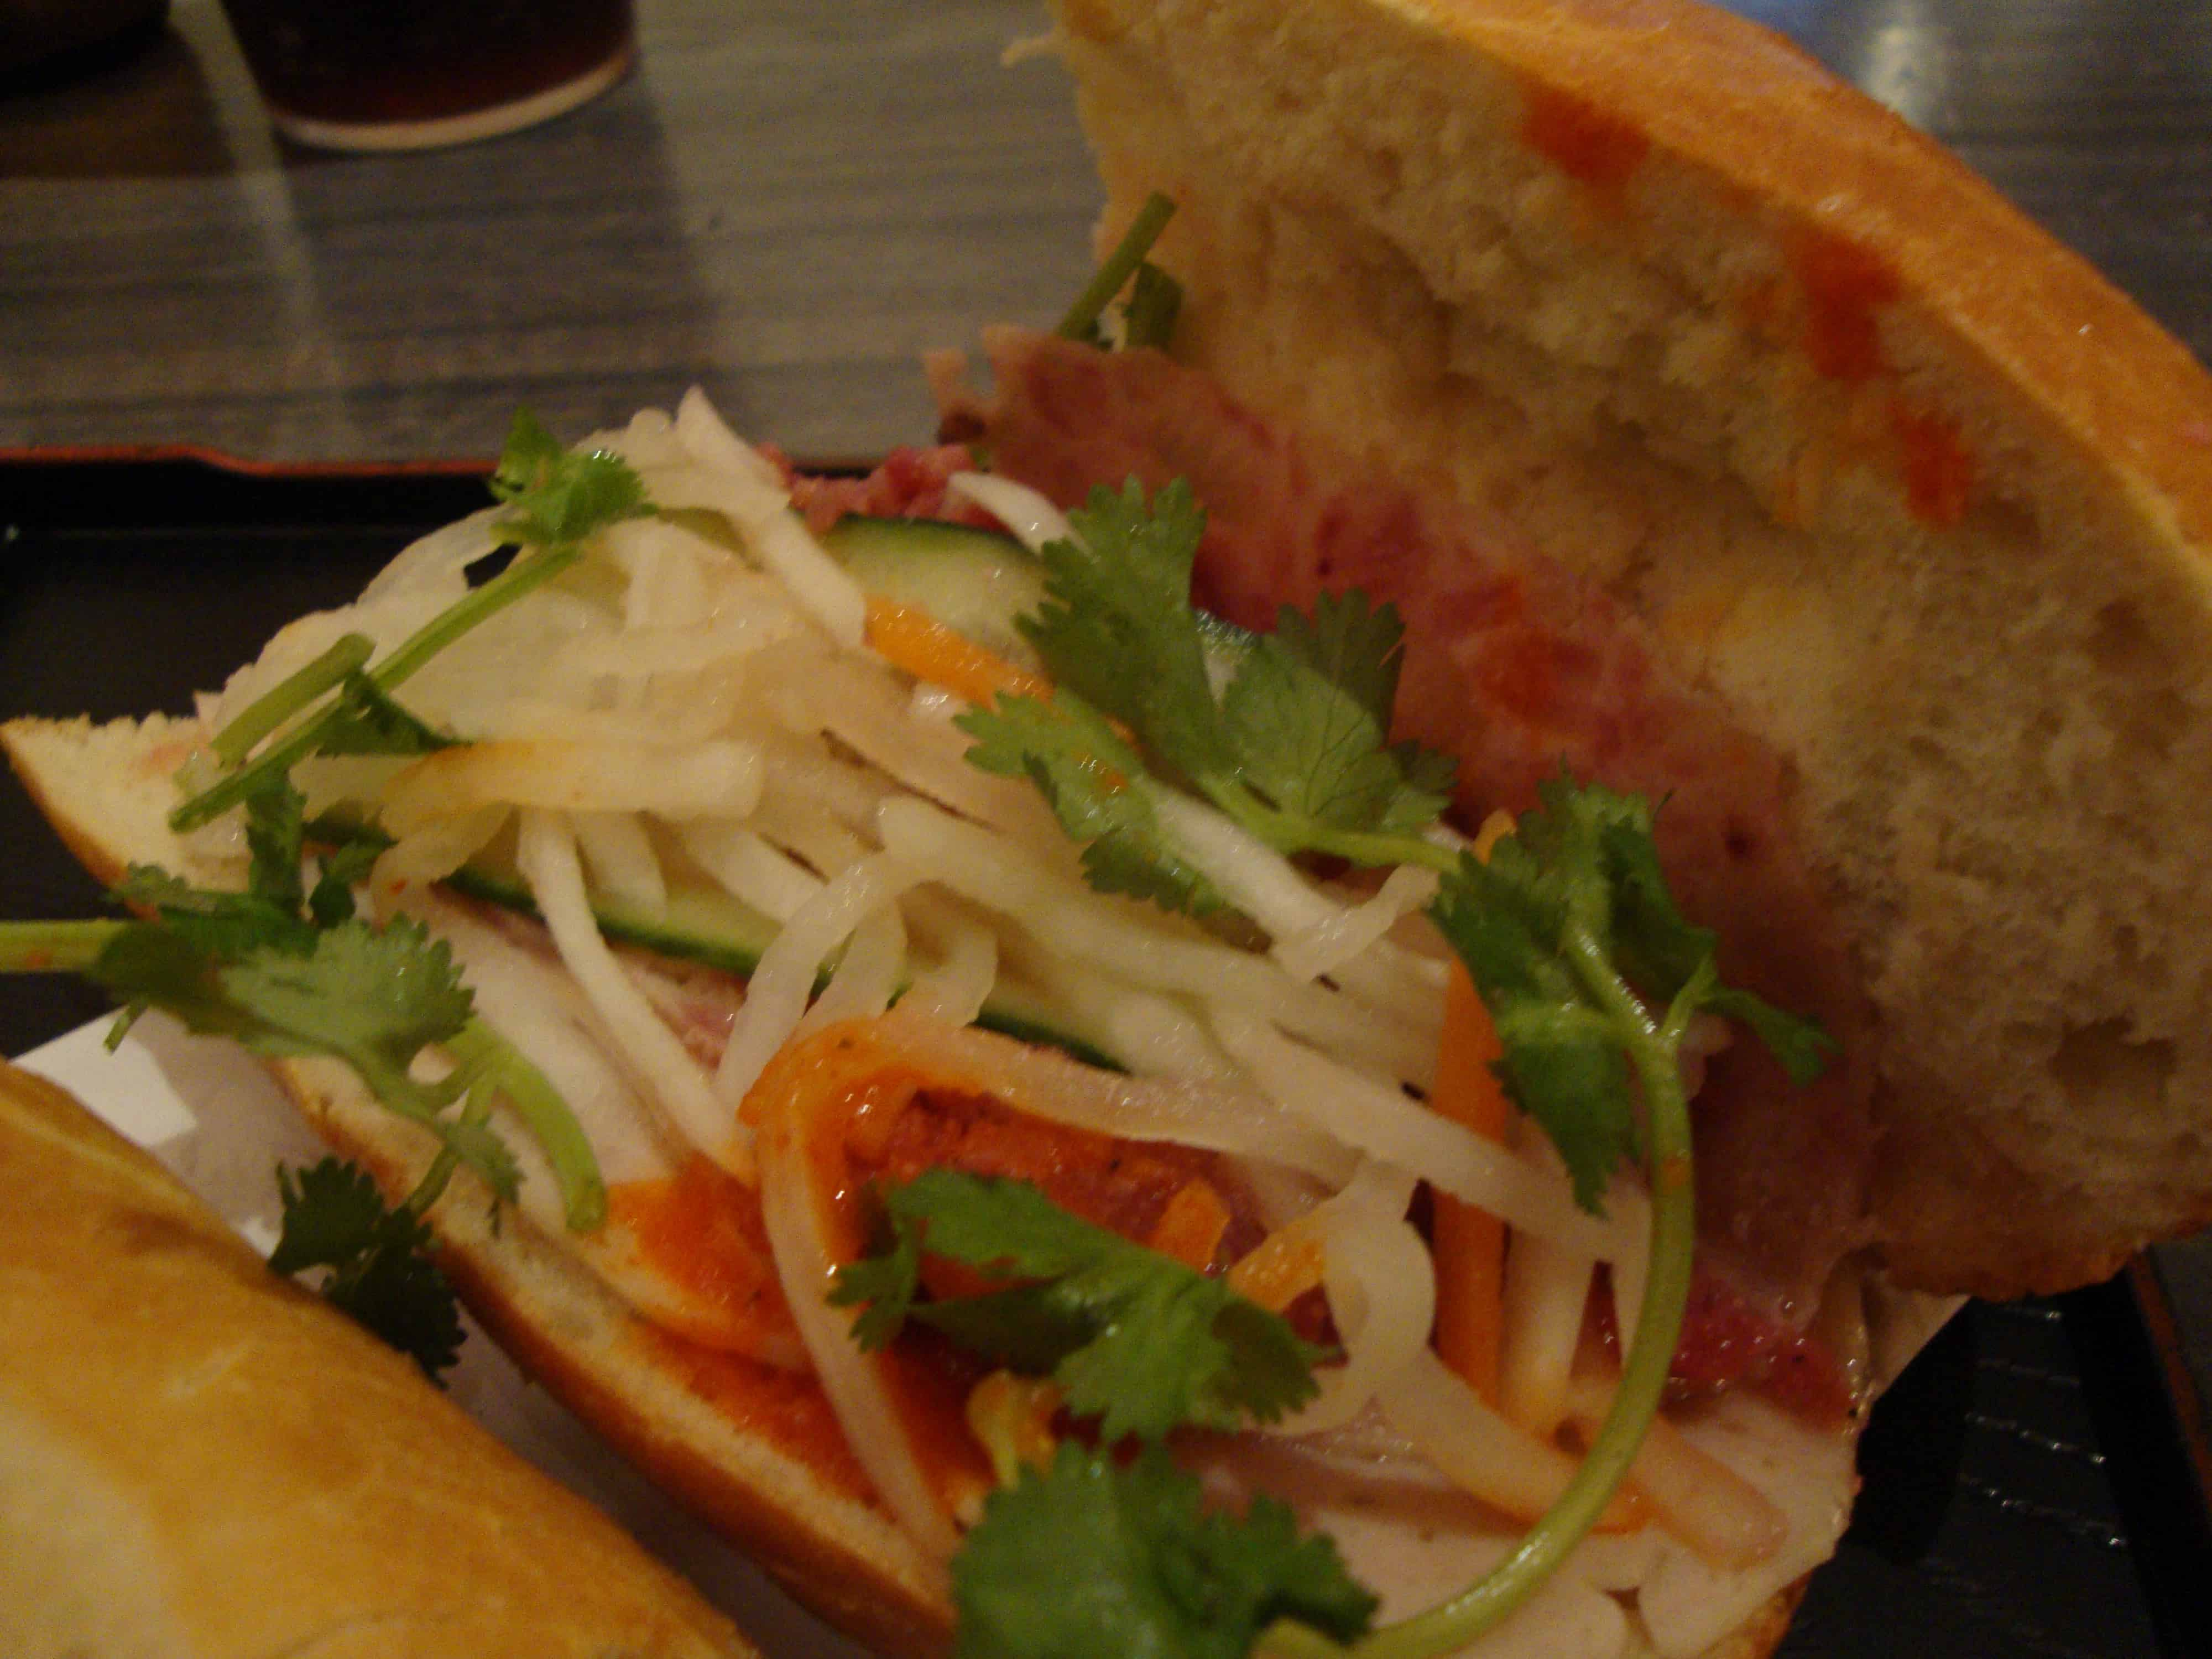 Open Classic Banh Mi